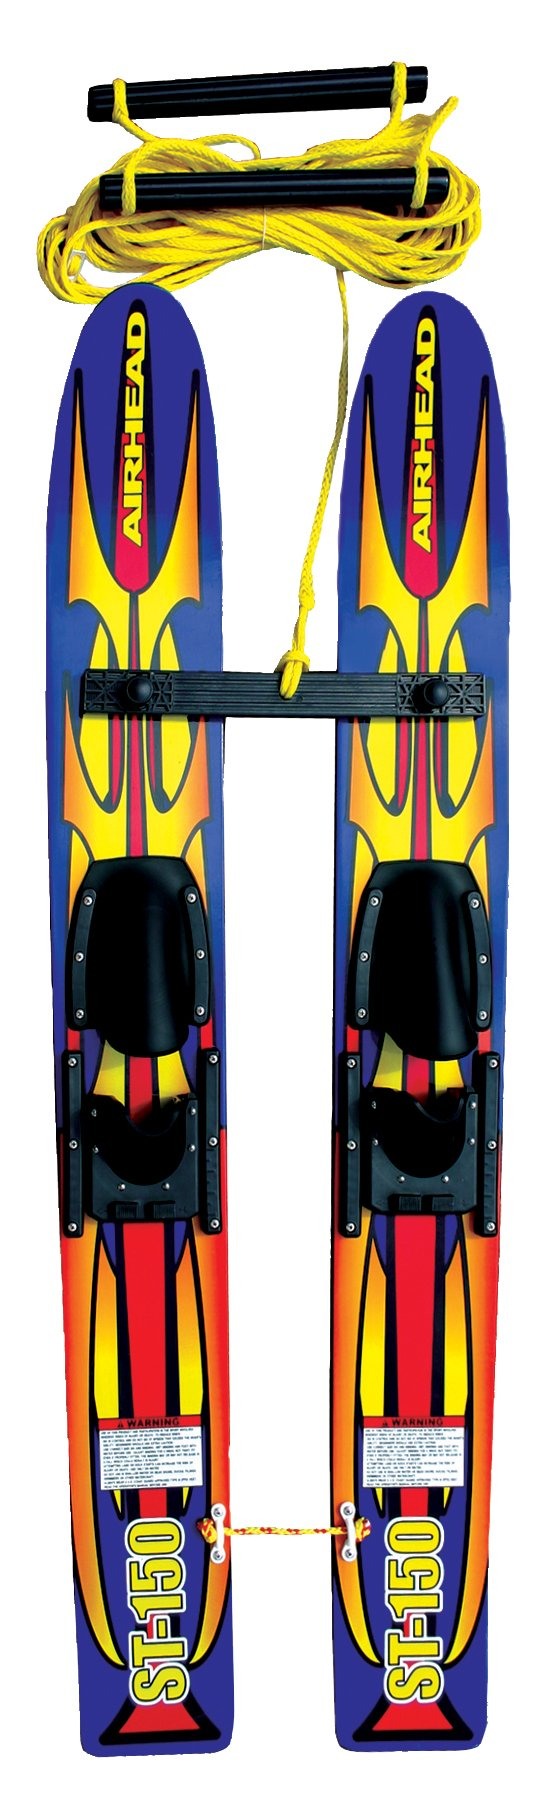 AIRHEAD AHST-150 Trainer Water Skis by Airhead